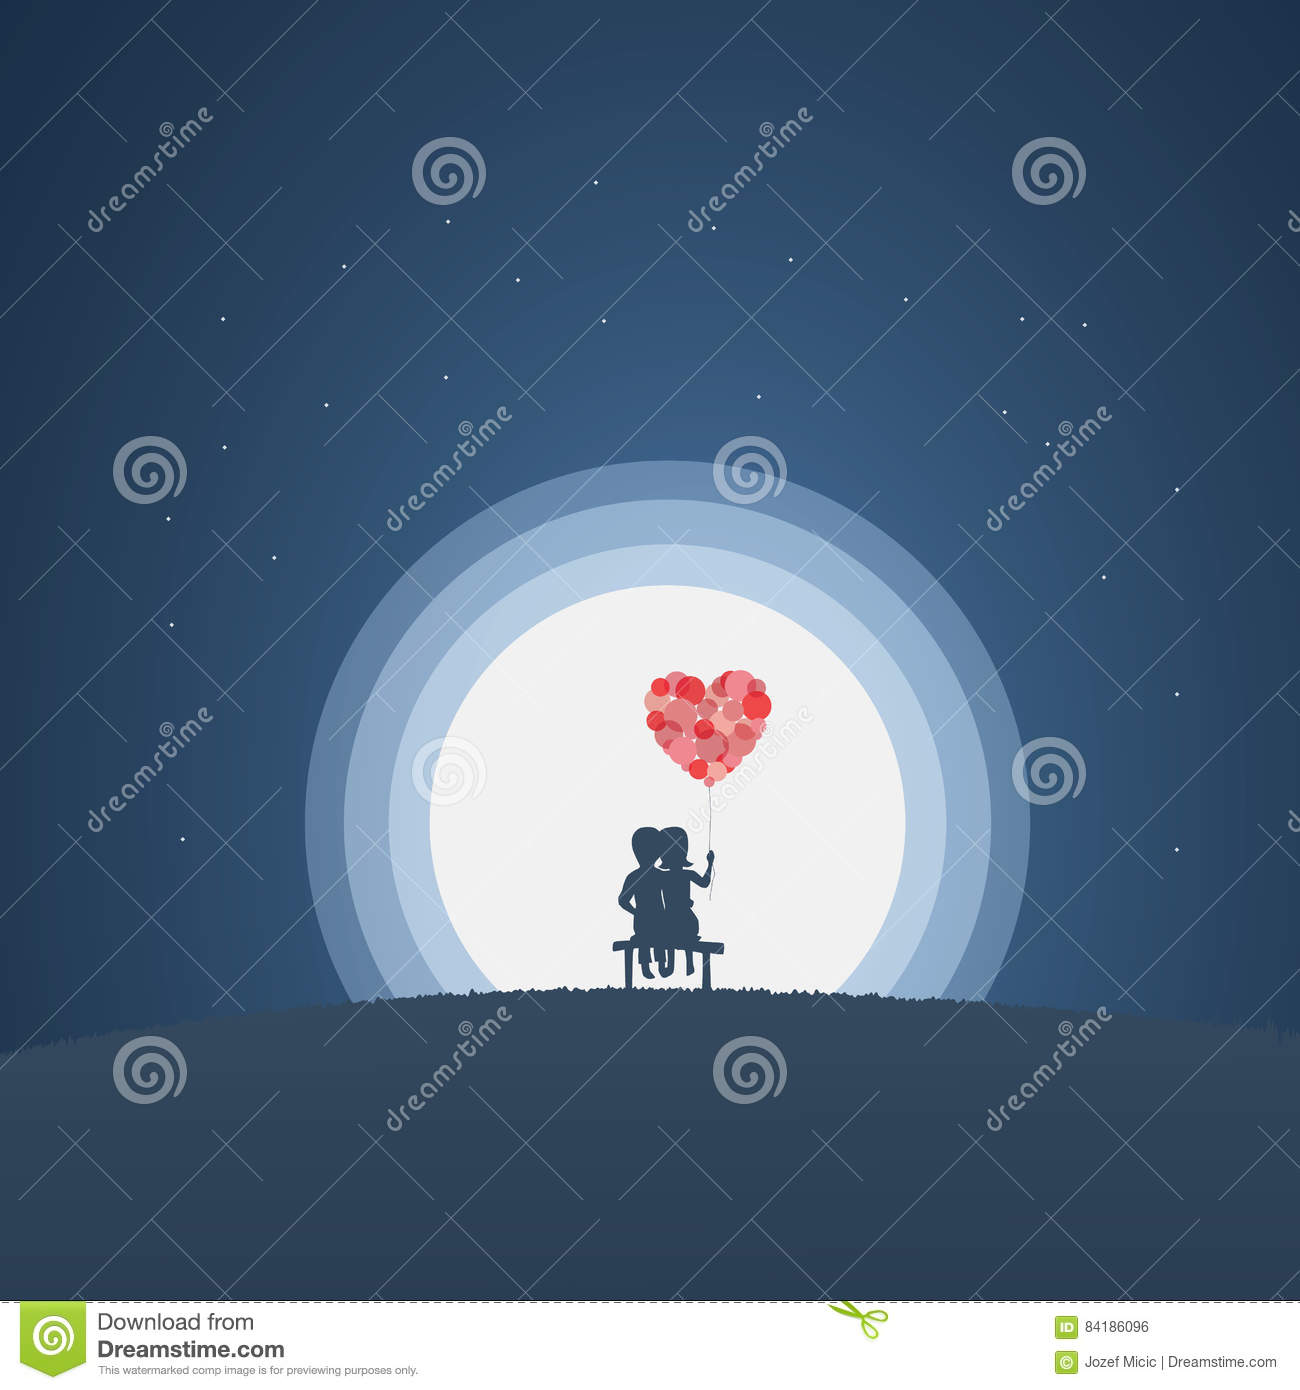 Kids at night with moon royalty free stock photography image - Valentine Card Vector Illustration Template With Cute Couple Sitting On A Bench At Night In Moonlight